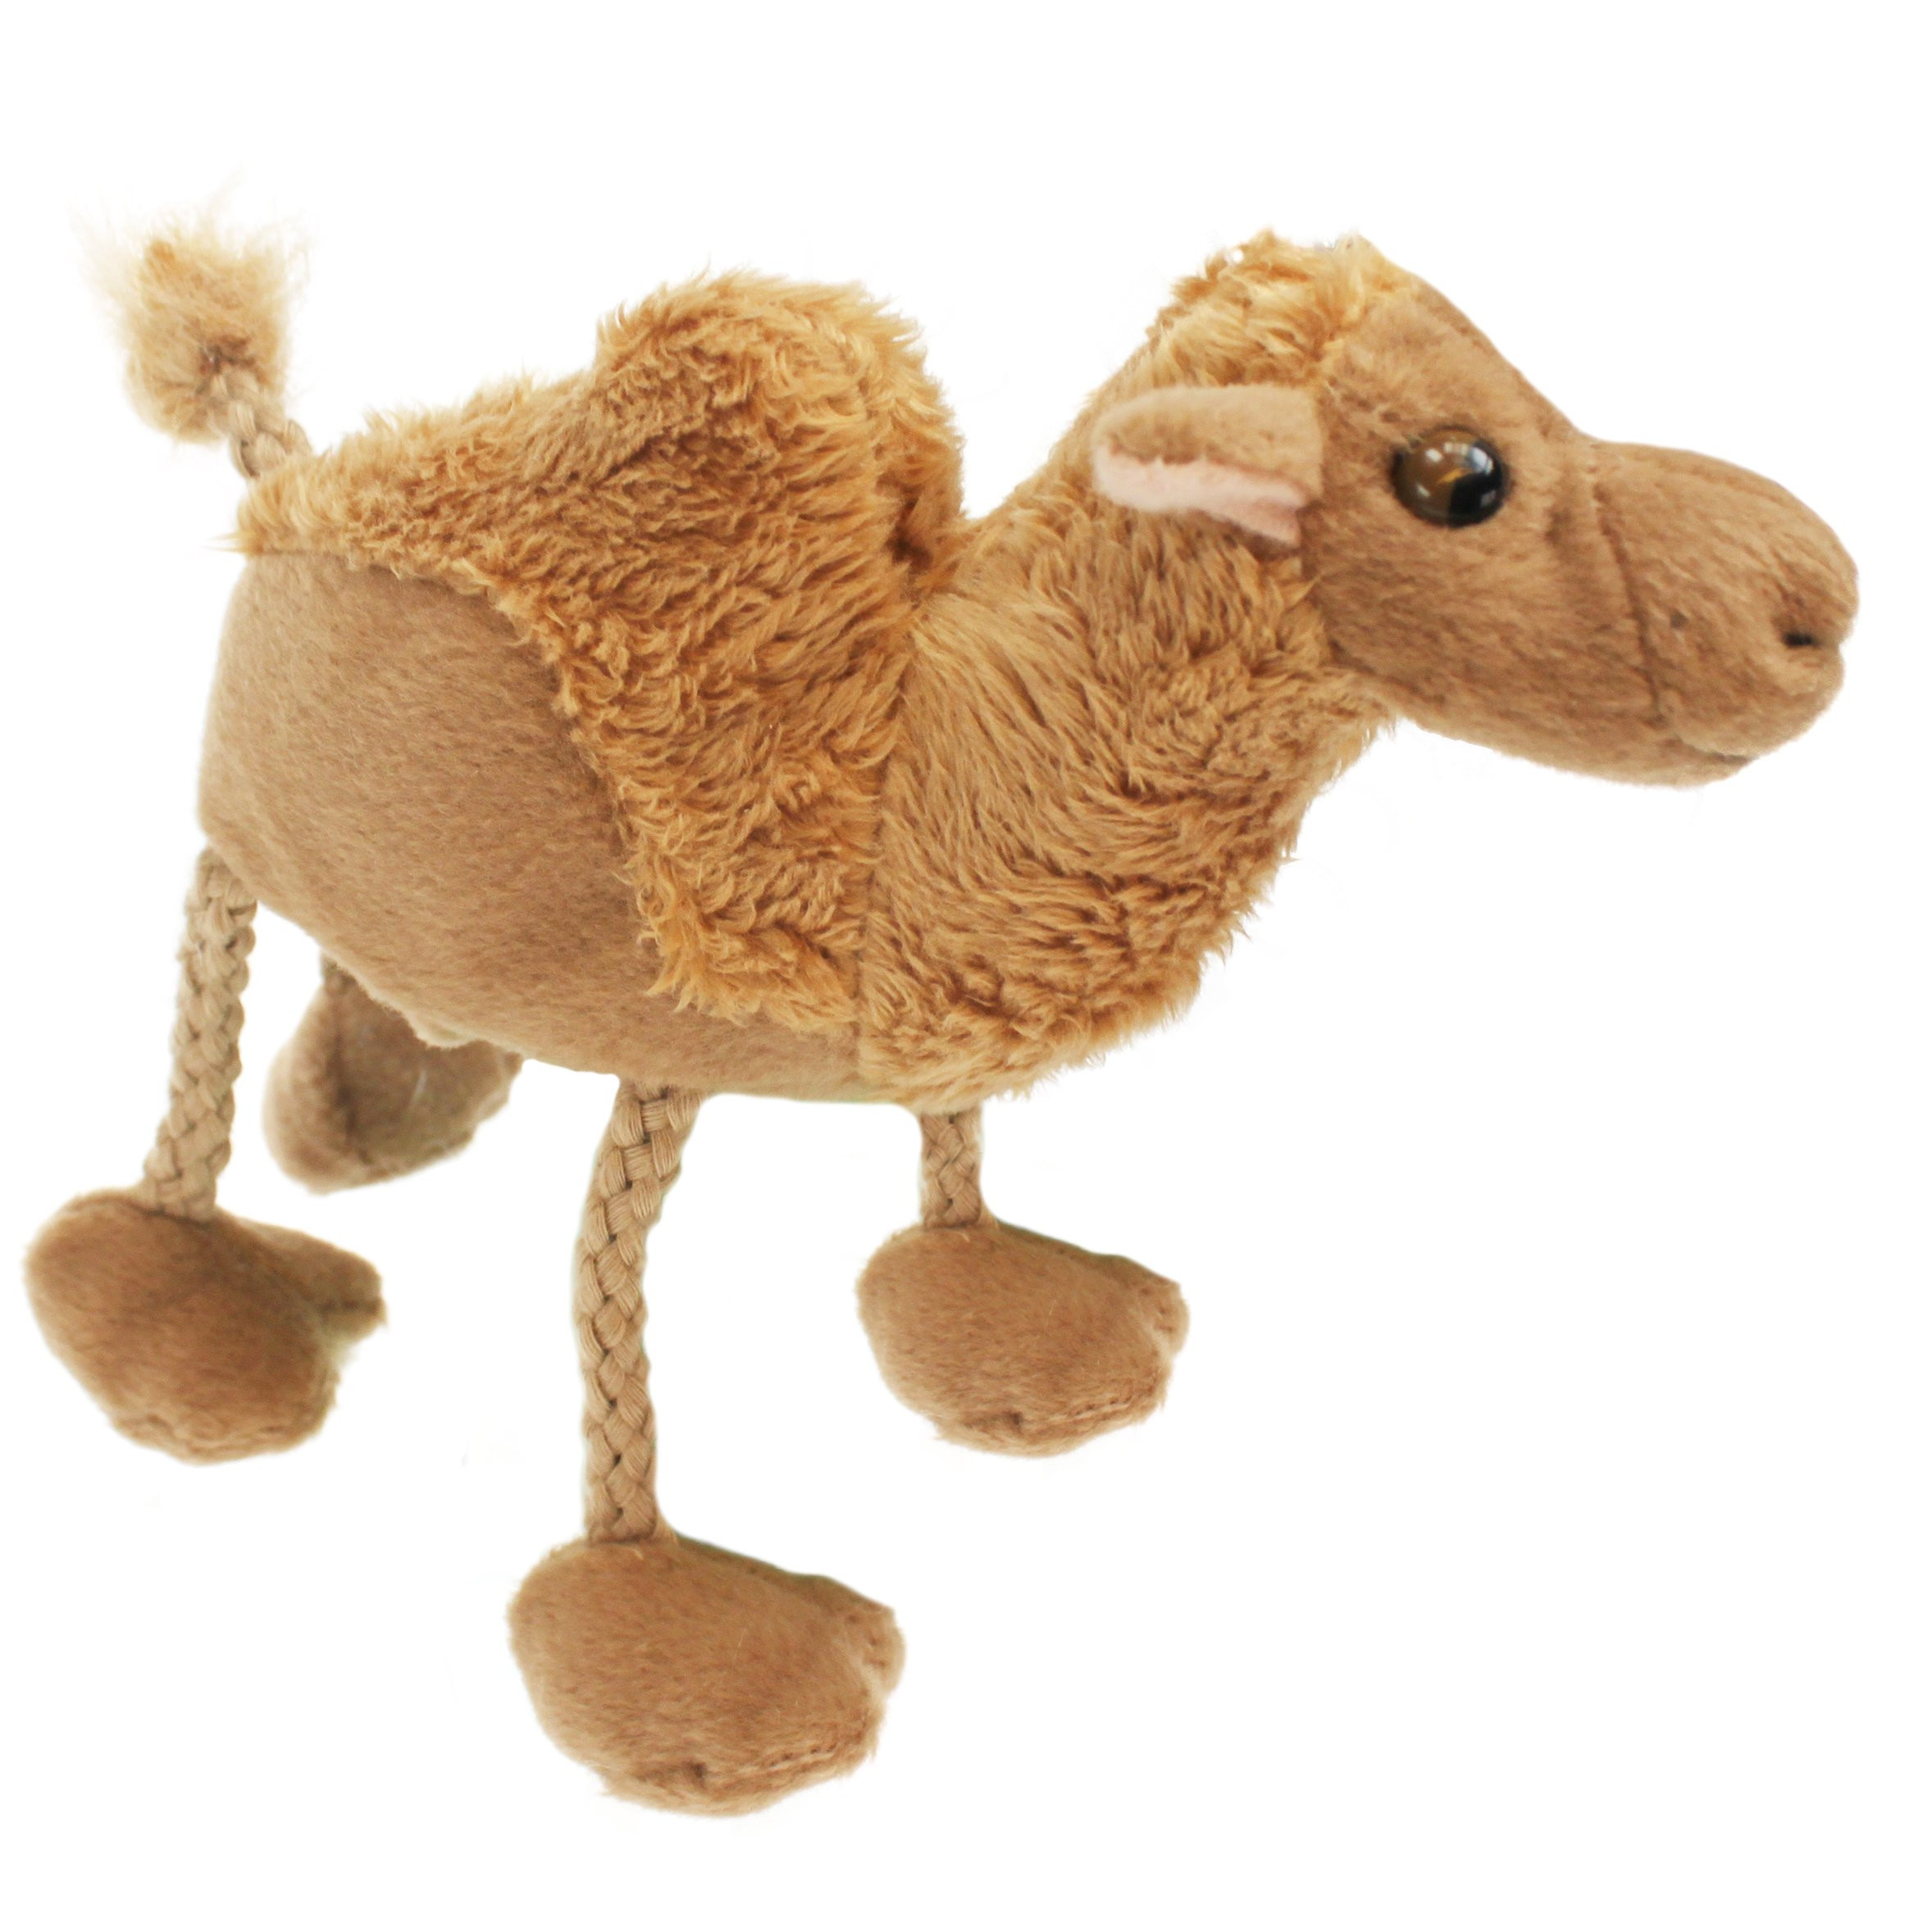 The Puppet Company Camel Finger Children Toys Puppets